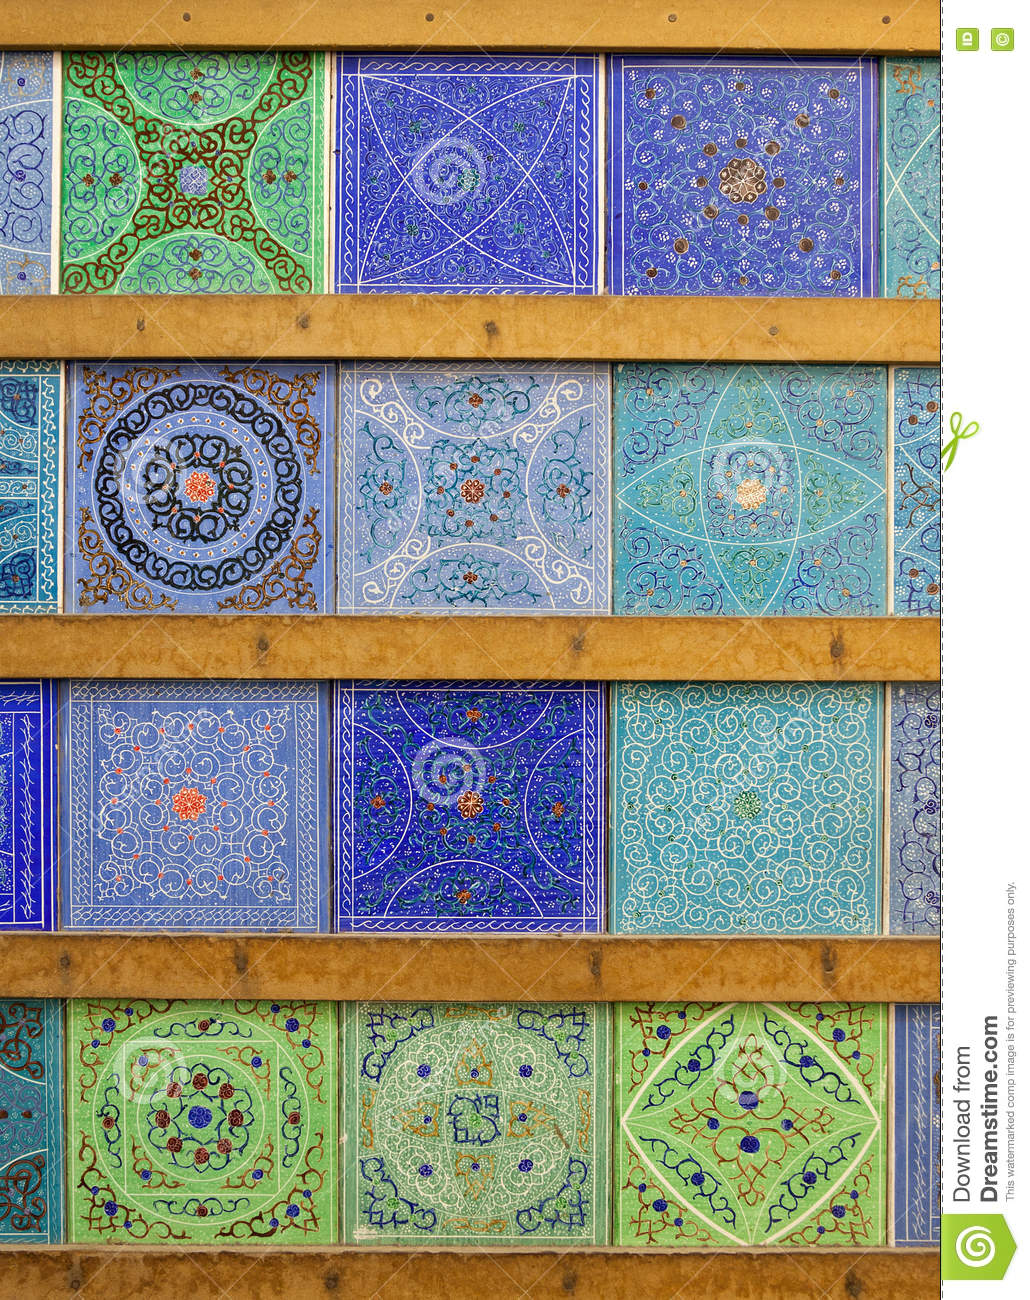 Persian Islamic Motifs And Patterns On Handmade Colorful Blue And ...